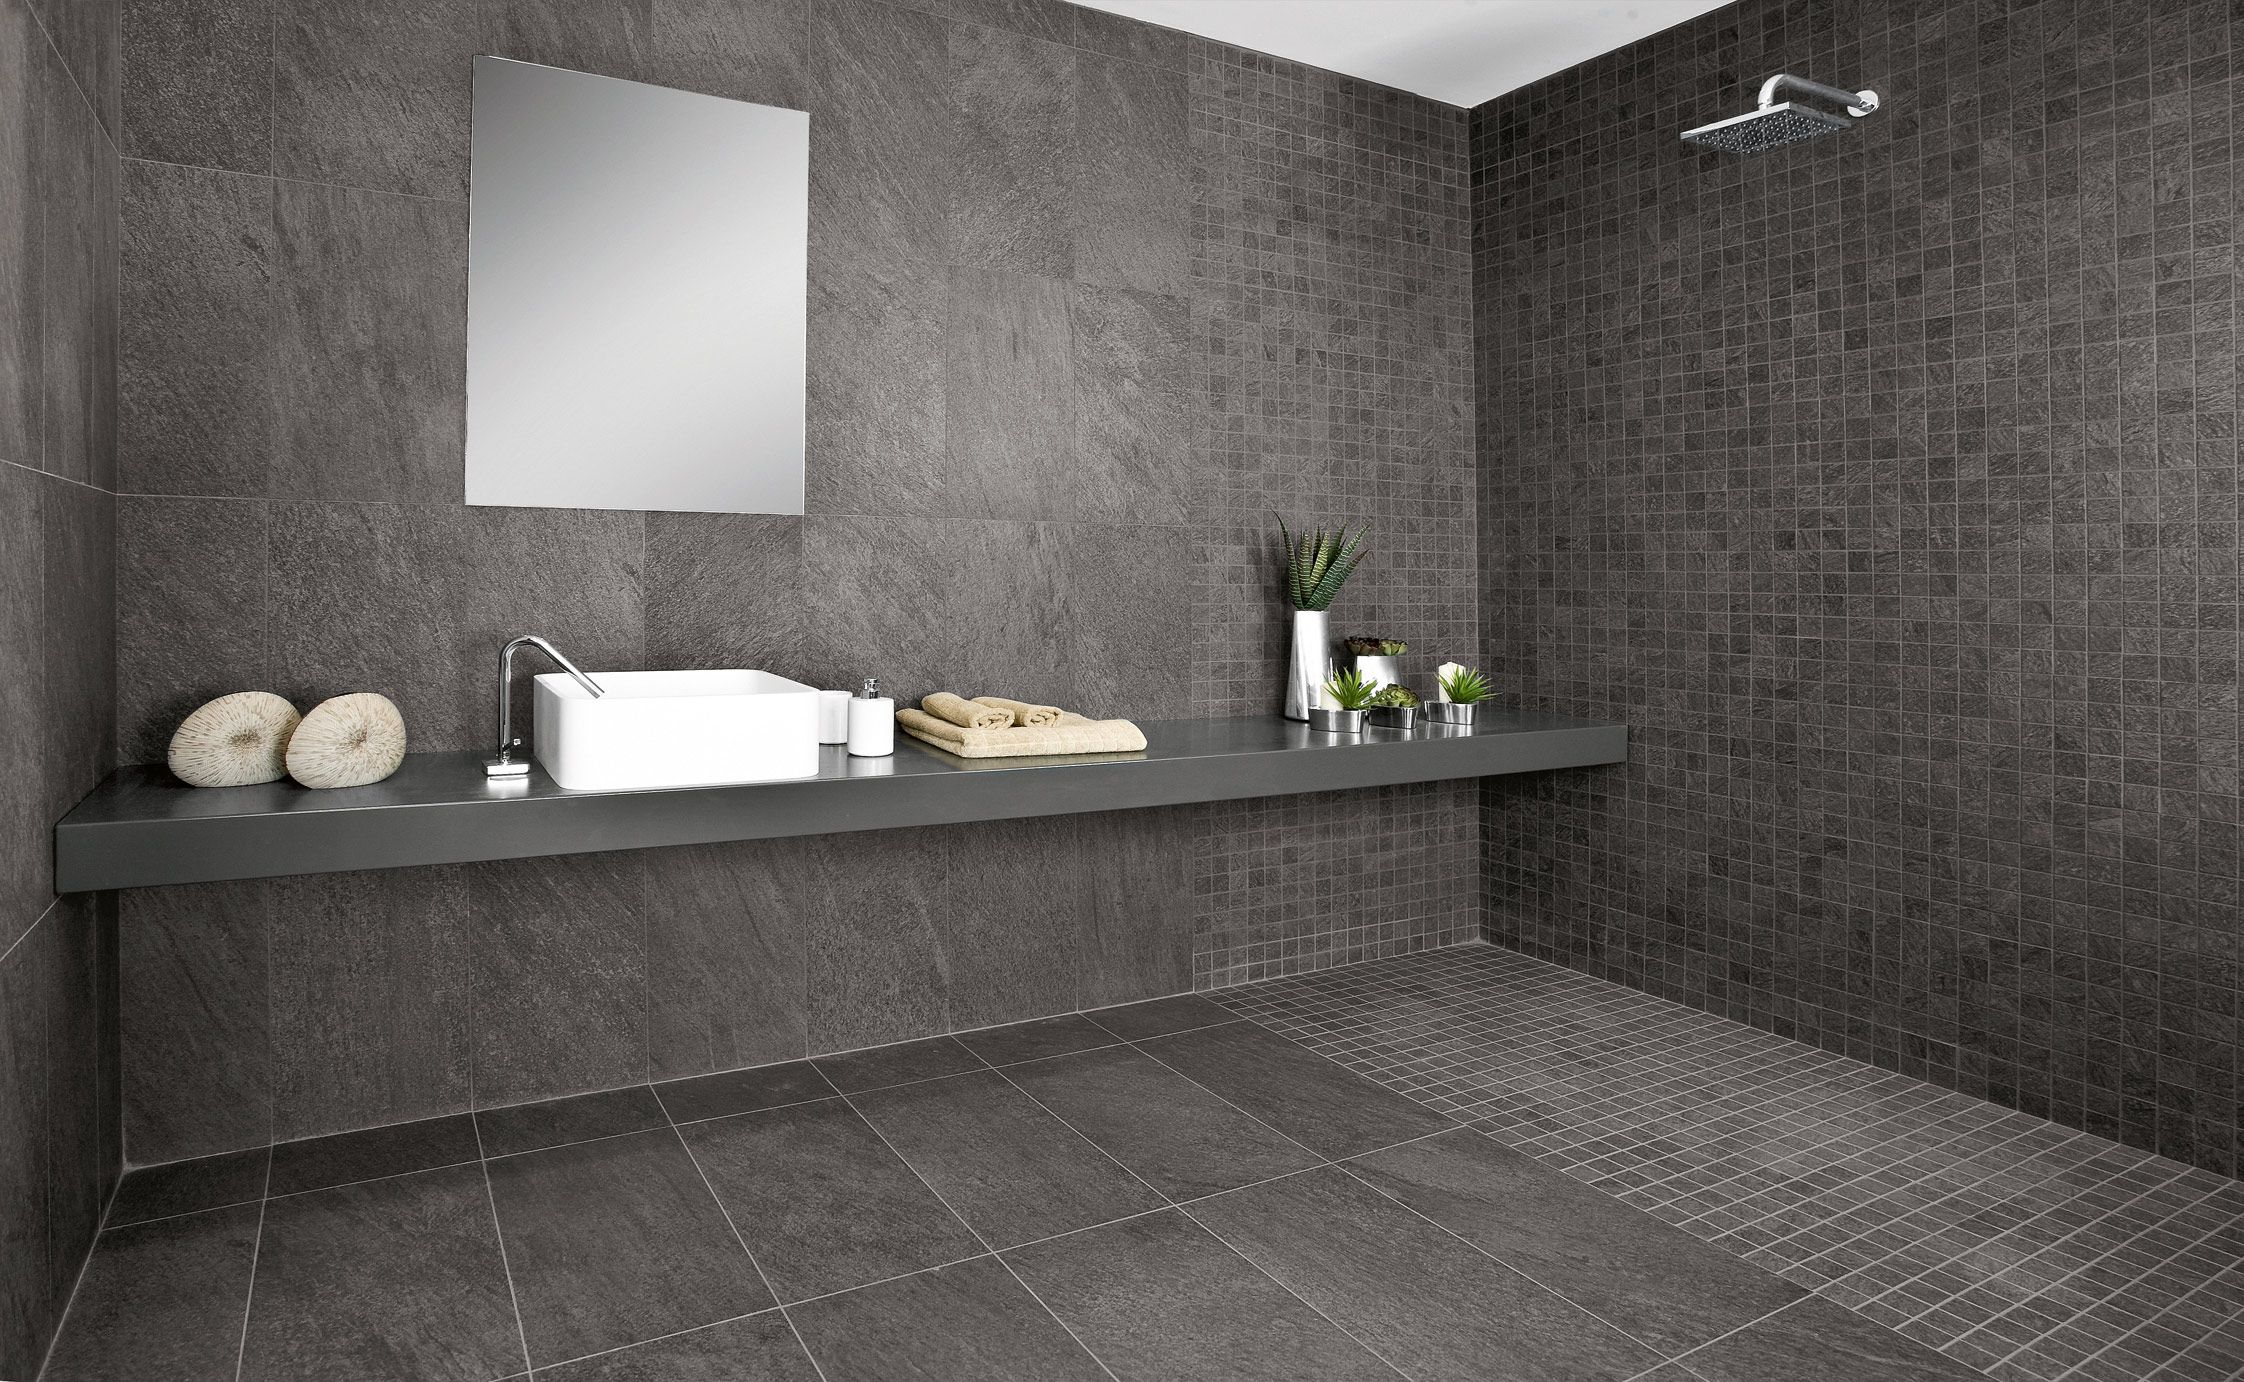 Wet Rooms An Ideal And Compact Solution In 2020 Bathroom Tile Designs Wet Rooms Wet Room Tiles